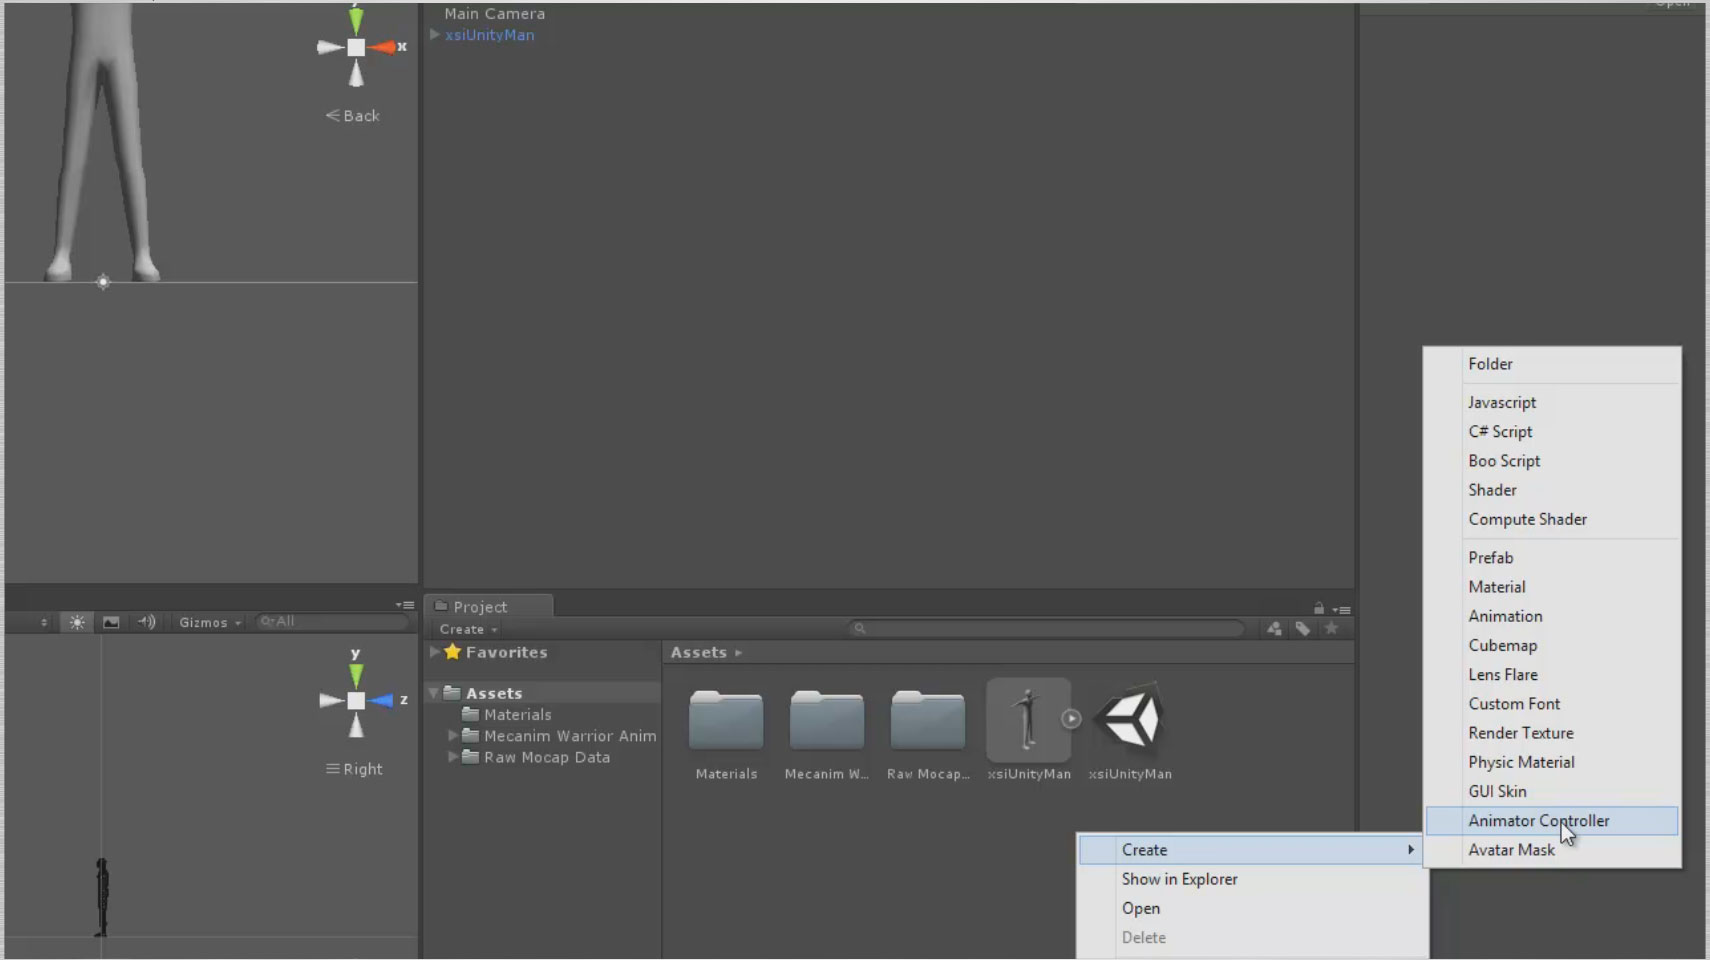 Create a new animation controller